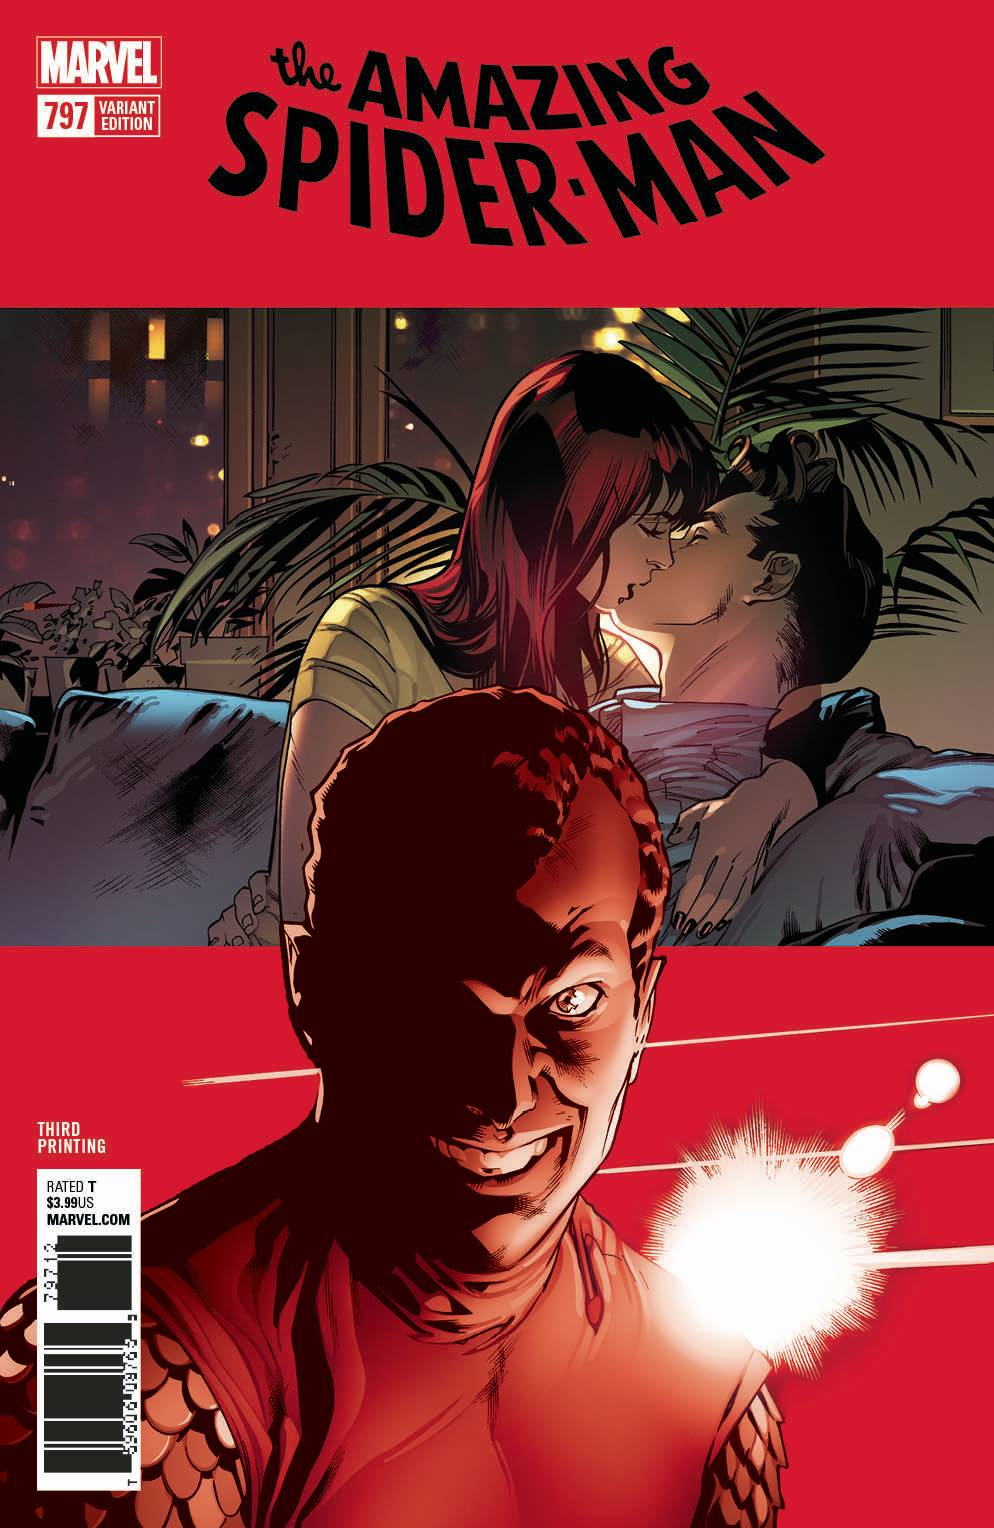 06/13/2018 AMAZING SPIDER-MAN #797 3RD PRINT VARIANT